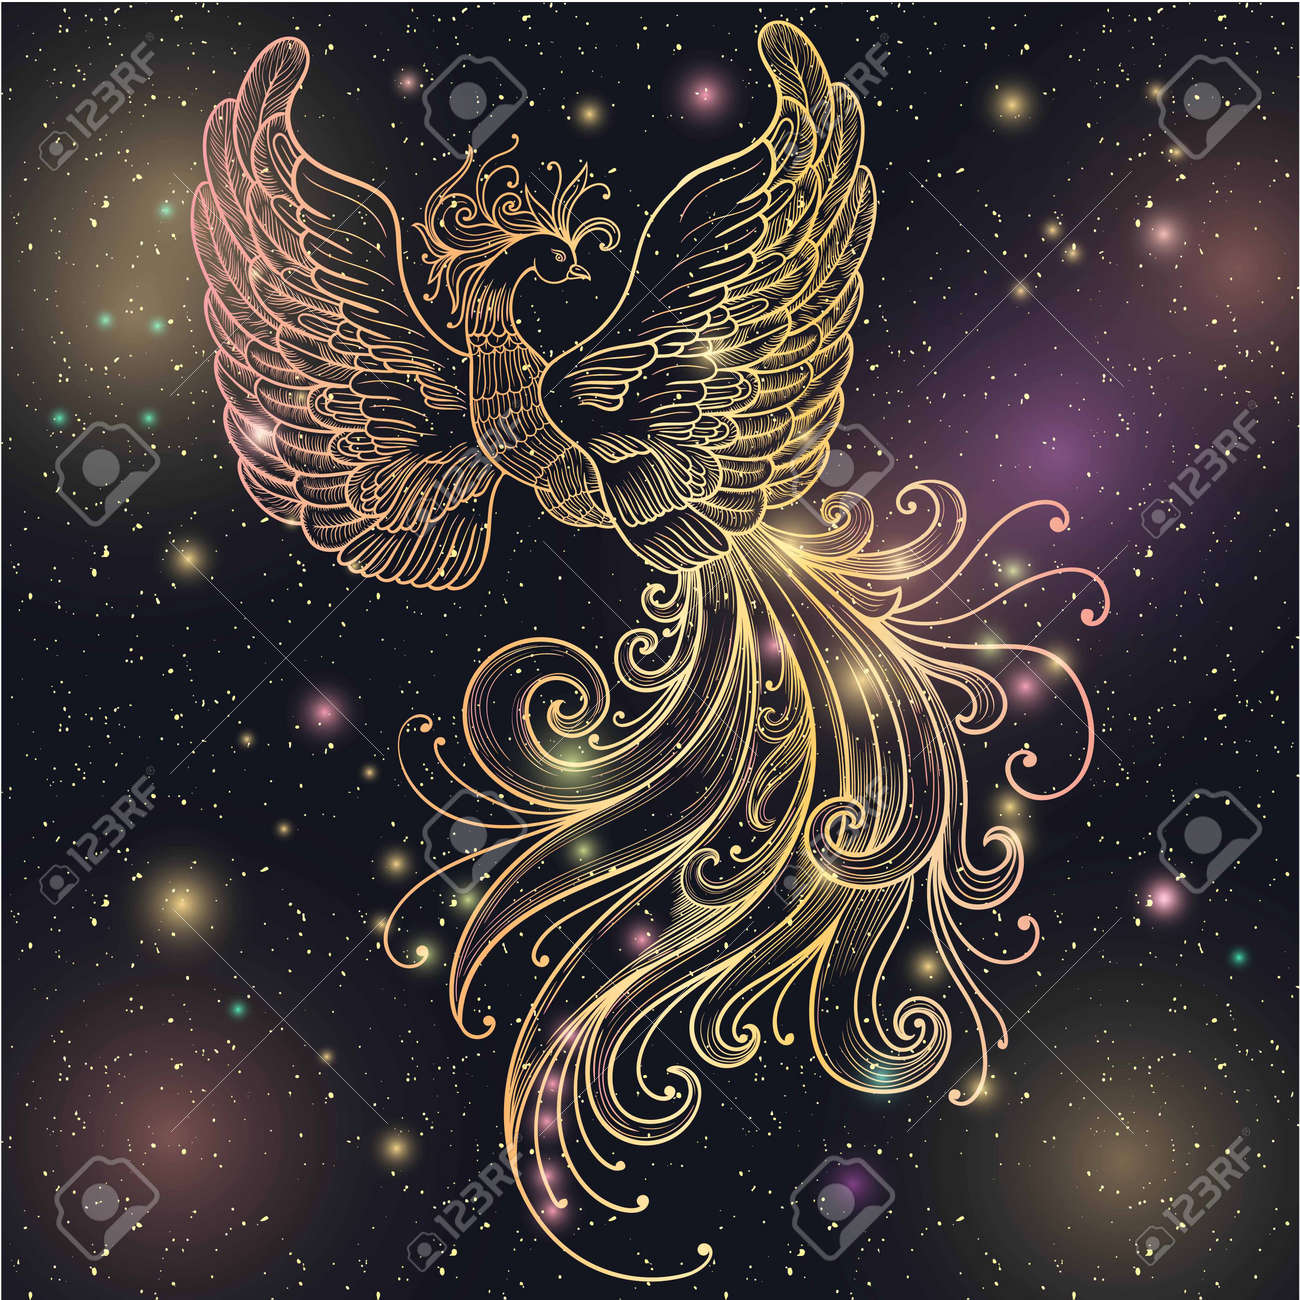 Magic space Firebird with stars vector clipart Gold glow and glitter. Ornate Filigree. Boho zentangle line art doodle. Suitable for tattoos, body art, coloring for adults and vintage design. - 58752600